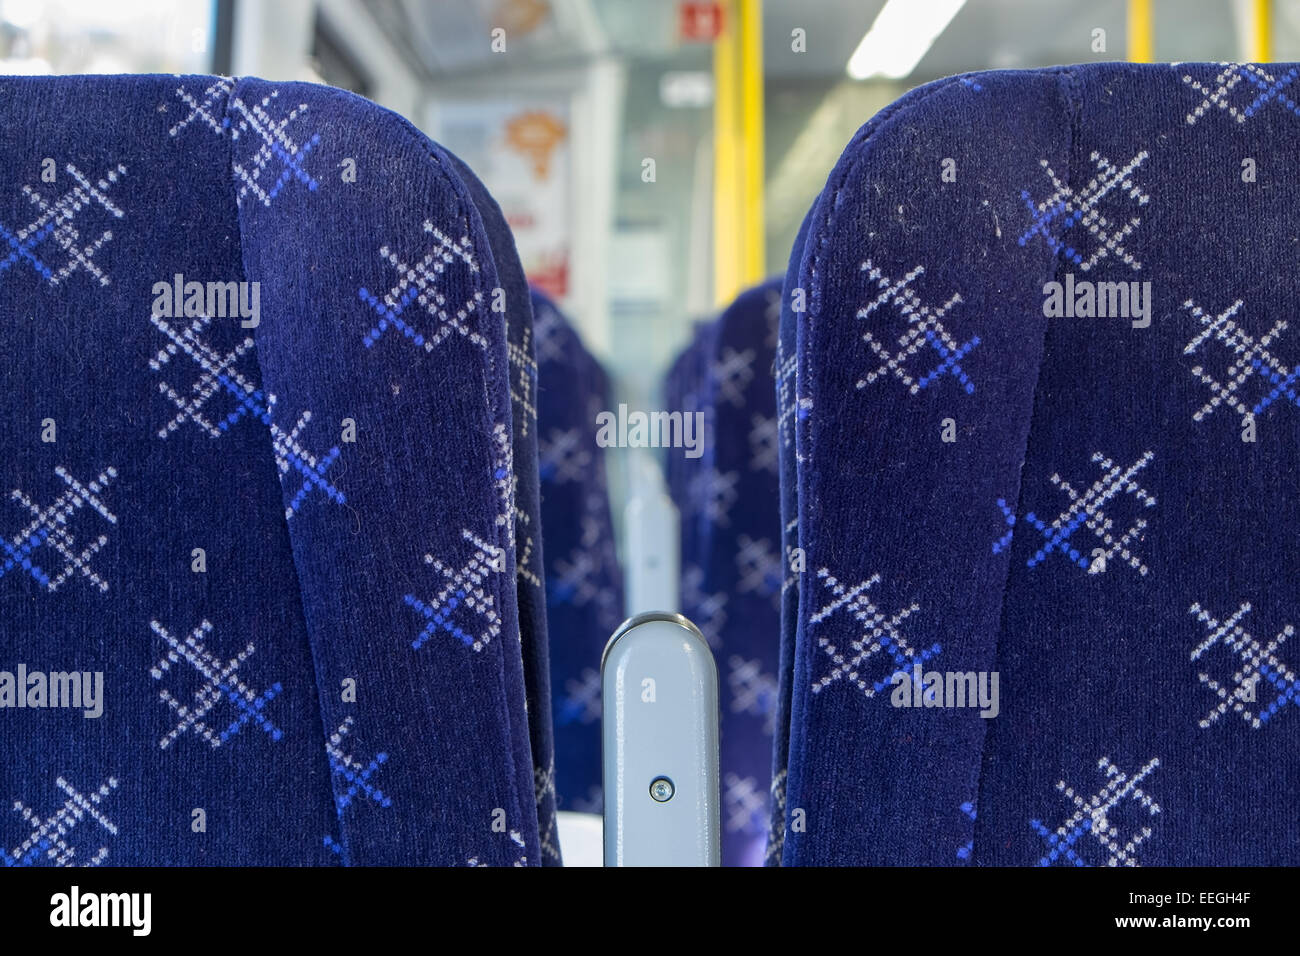 Seats on a Scotrail train with their logo. - Stock Image